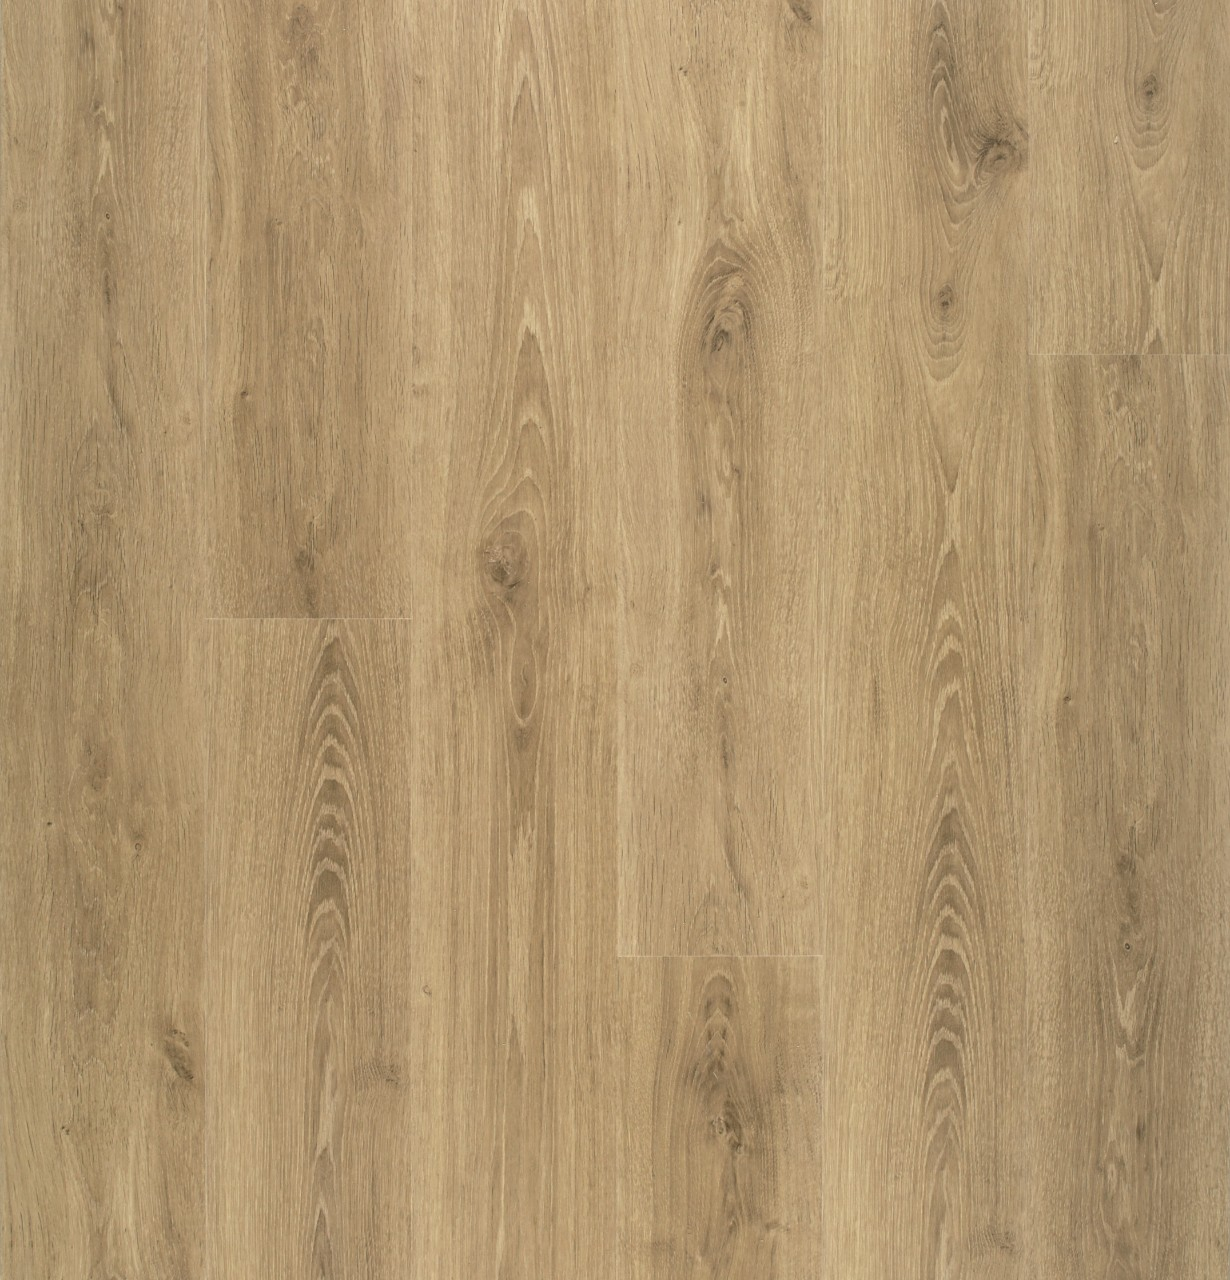 Natural Domestic Extra Uniclic Laminate Authentic oak, plank L0701-1462